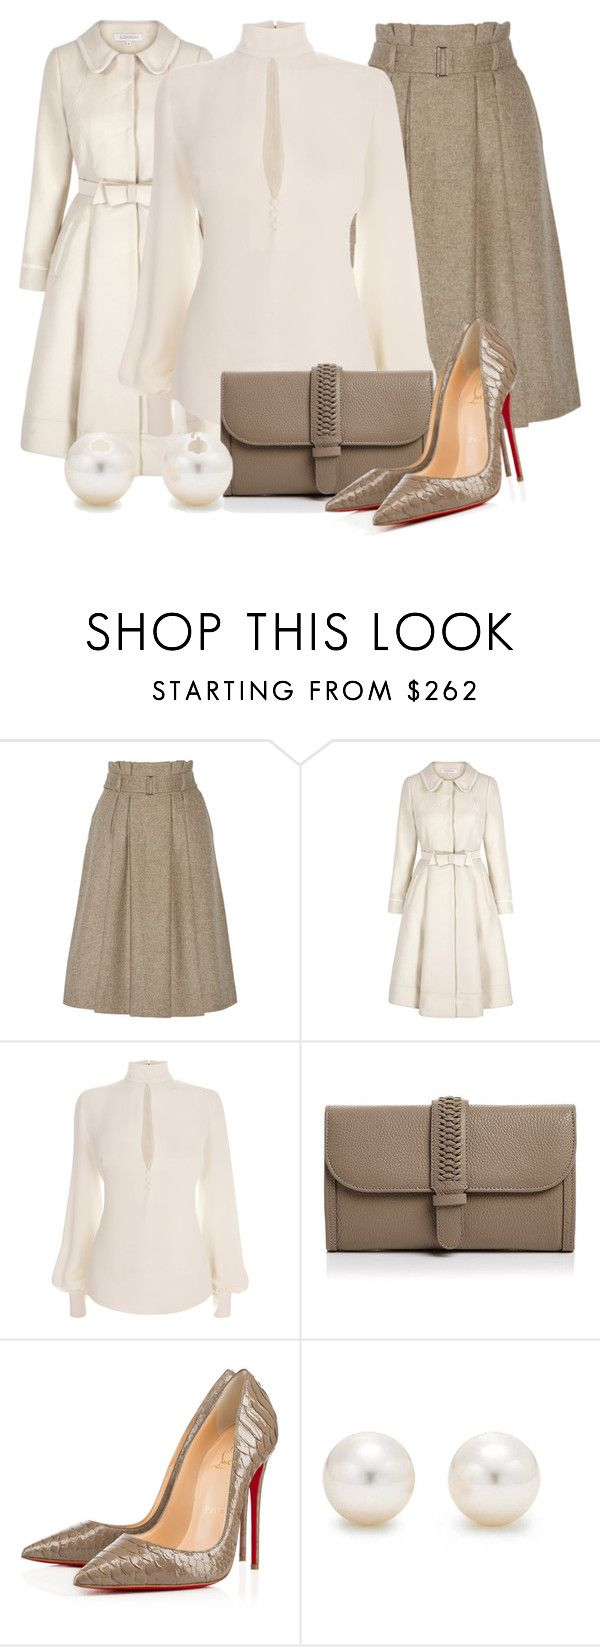 """Untitled #440"" by merida ❤ liked on Polyvore featuring By Malene Birger, Alexander McQueen, GRACE Atelier De Luxe and Tiffany & Co."